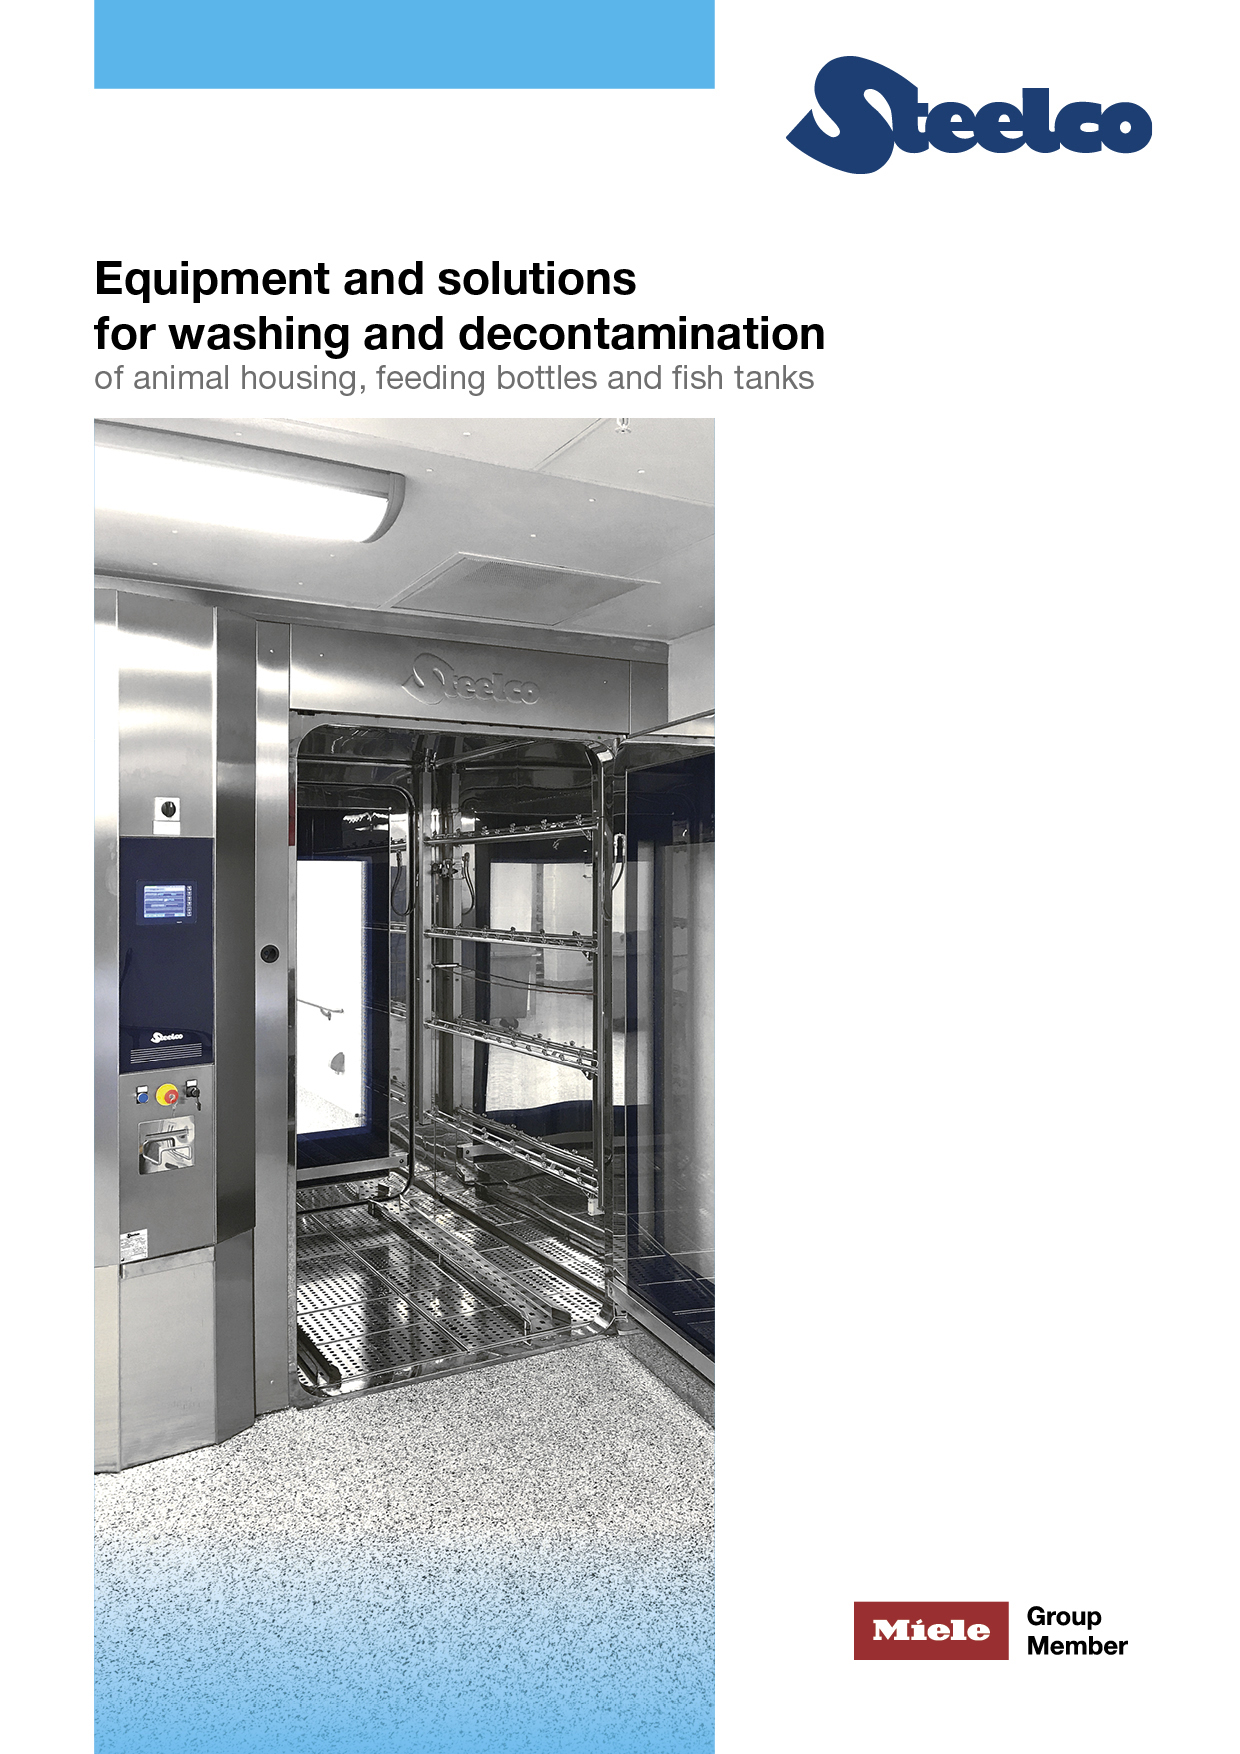 Lifescience application washing systems